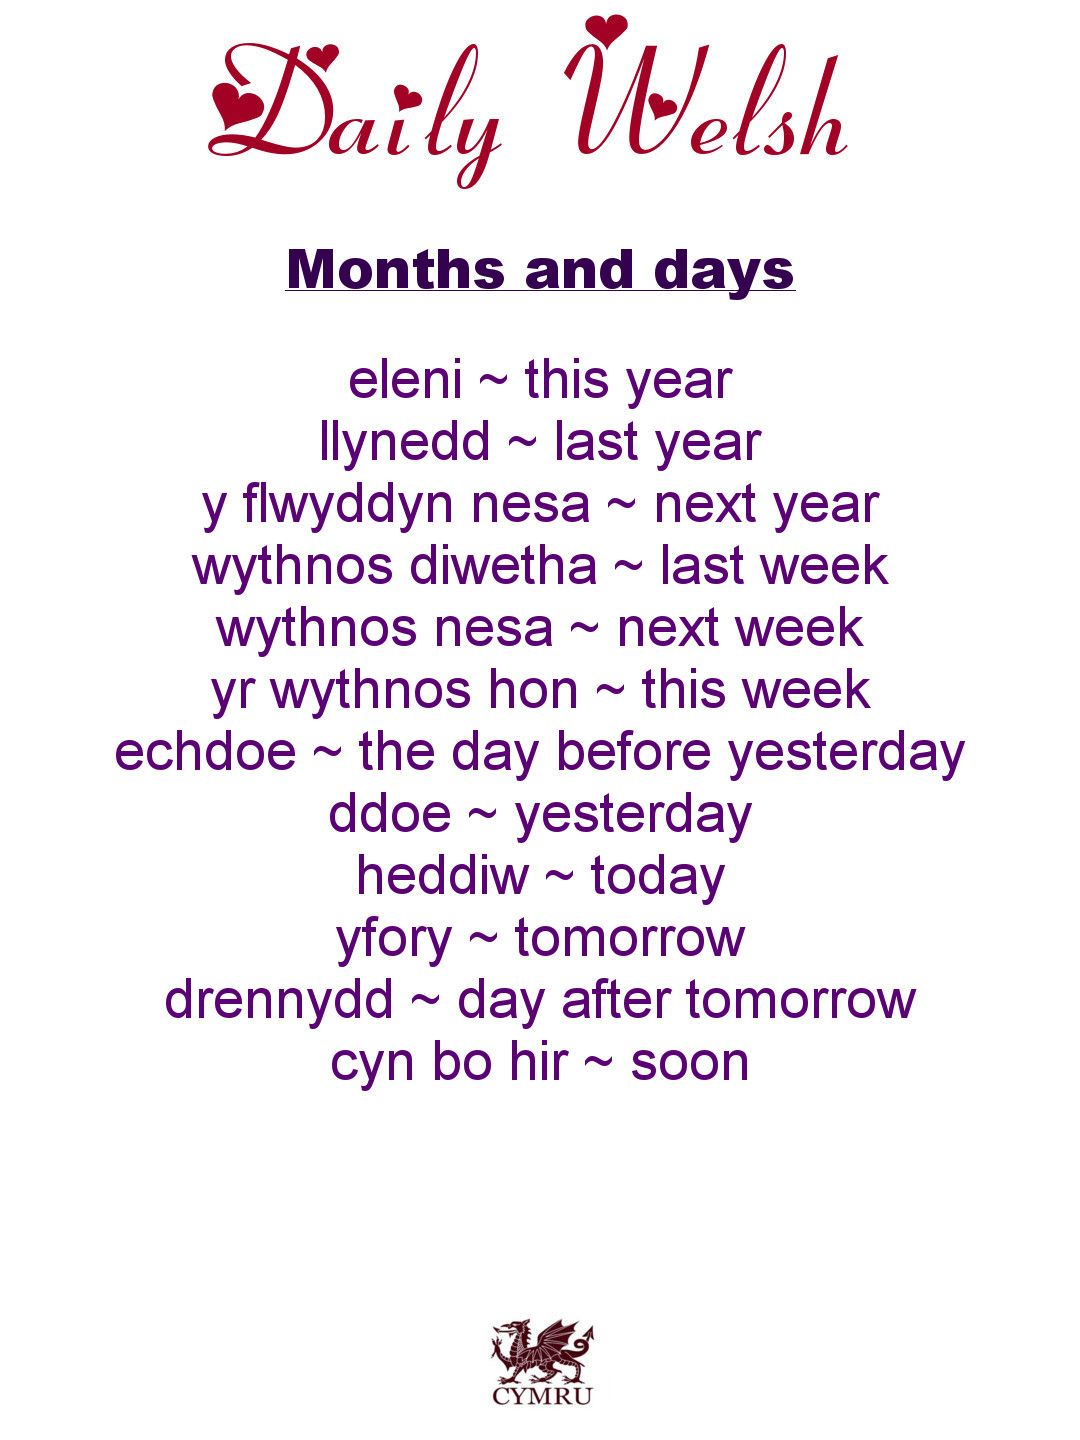 welsh language translation